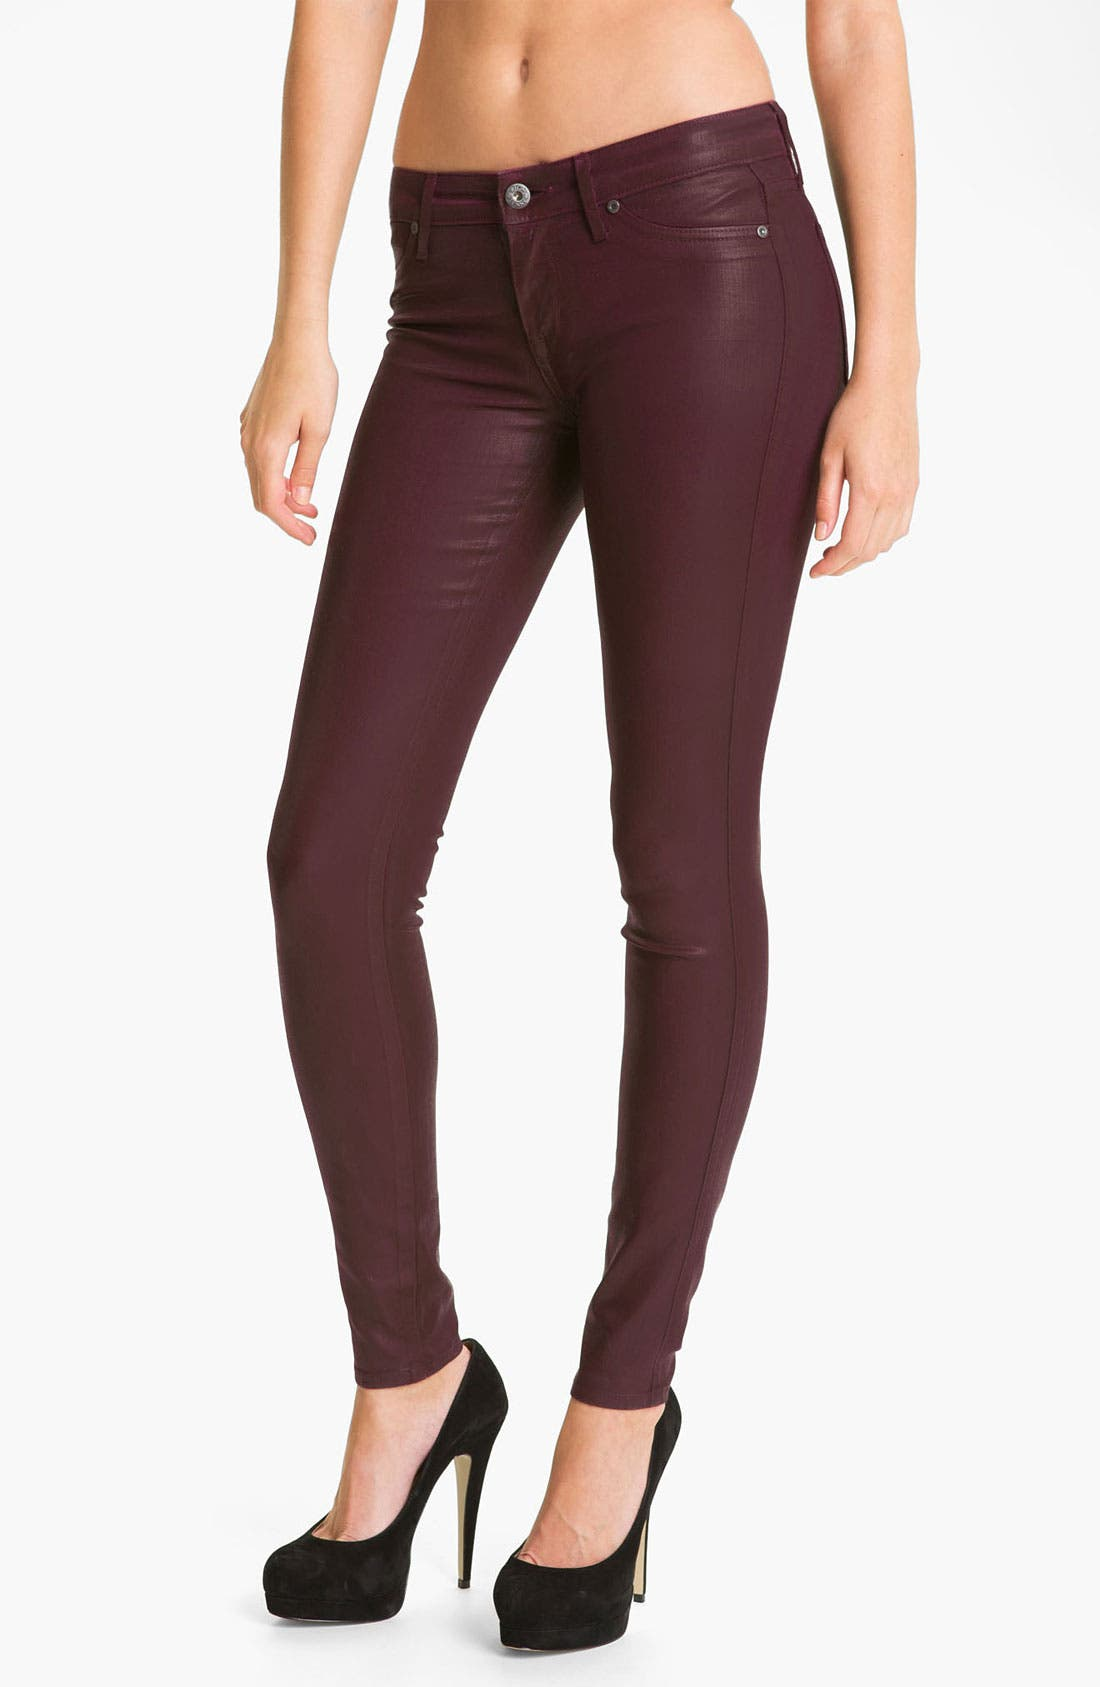 Alternate Image 1 Selected - Rich & Skinny 'Legacy Leather' Faux Leather Skinny Jeans (Oxblood)